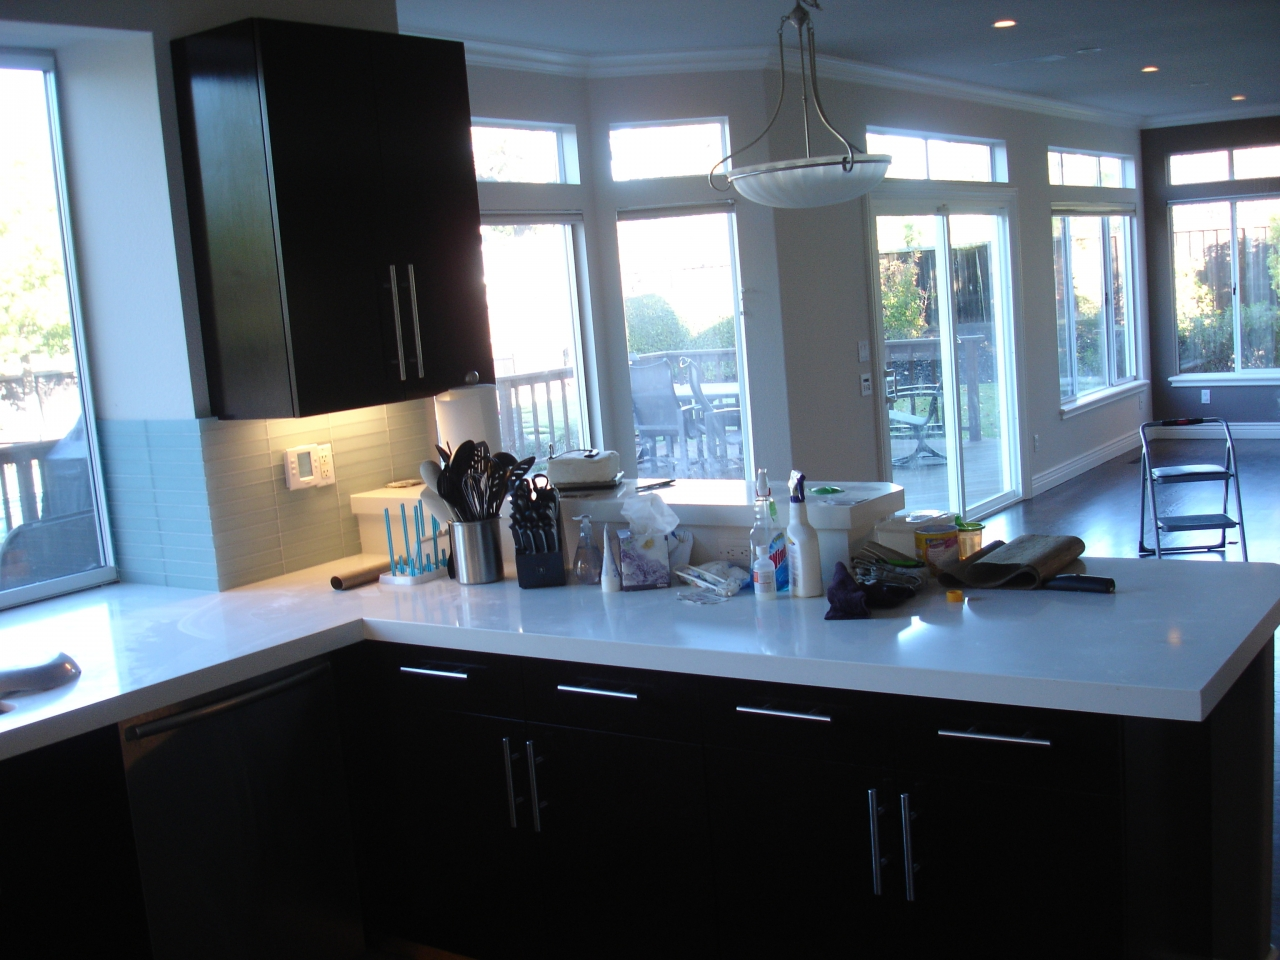 PHOTOS: Kitchen Remodels in Benicia, CA by John Tanner